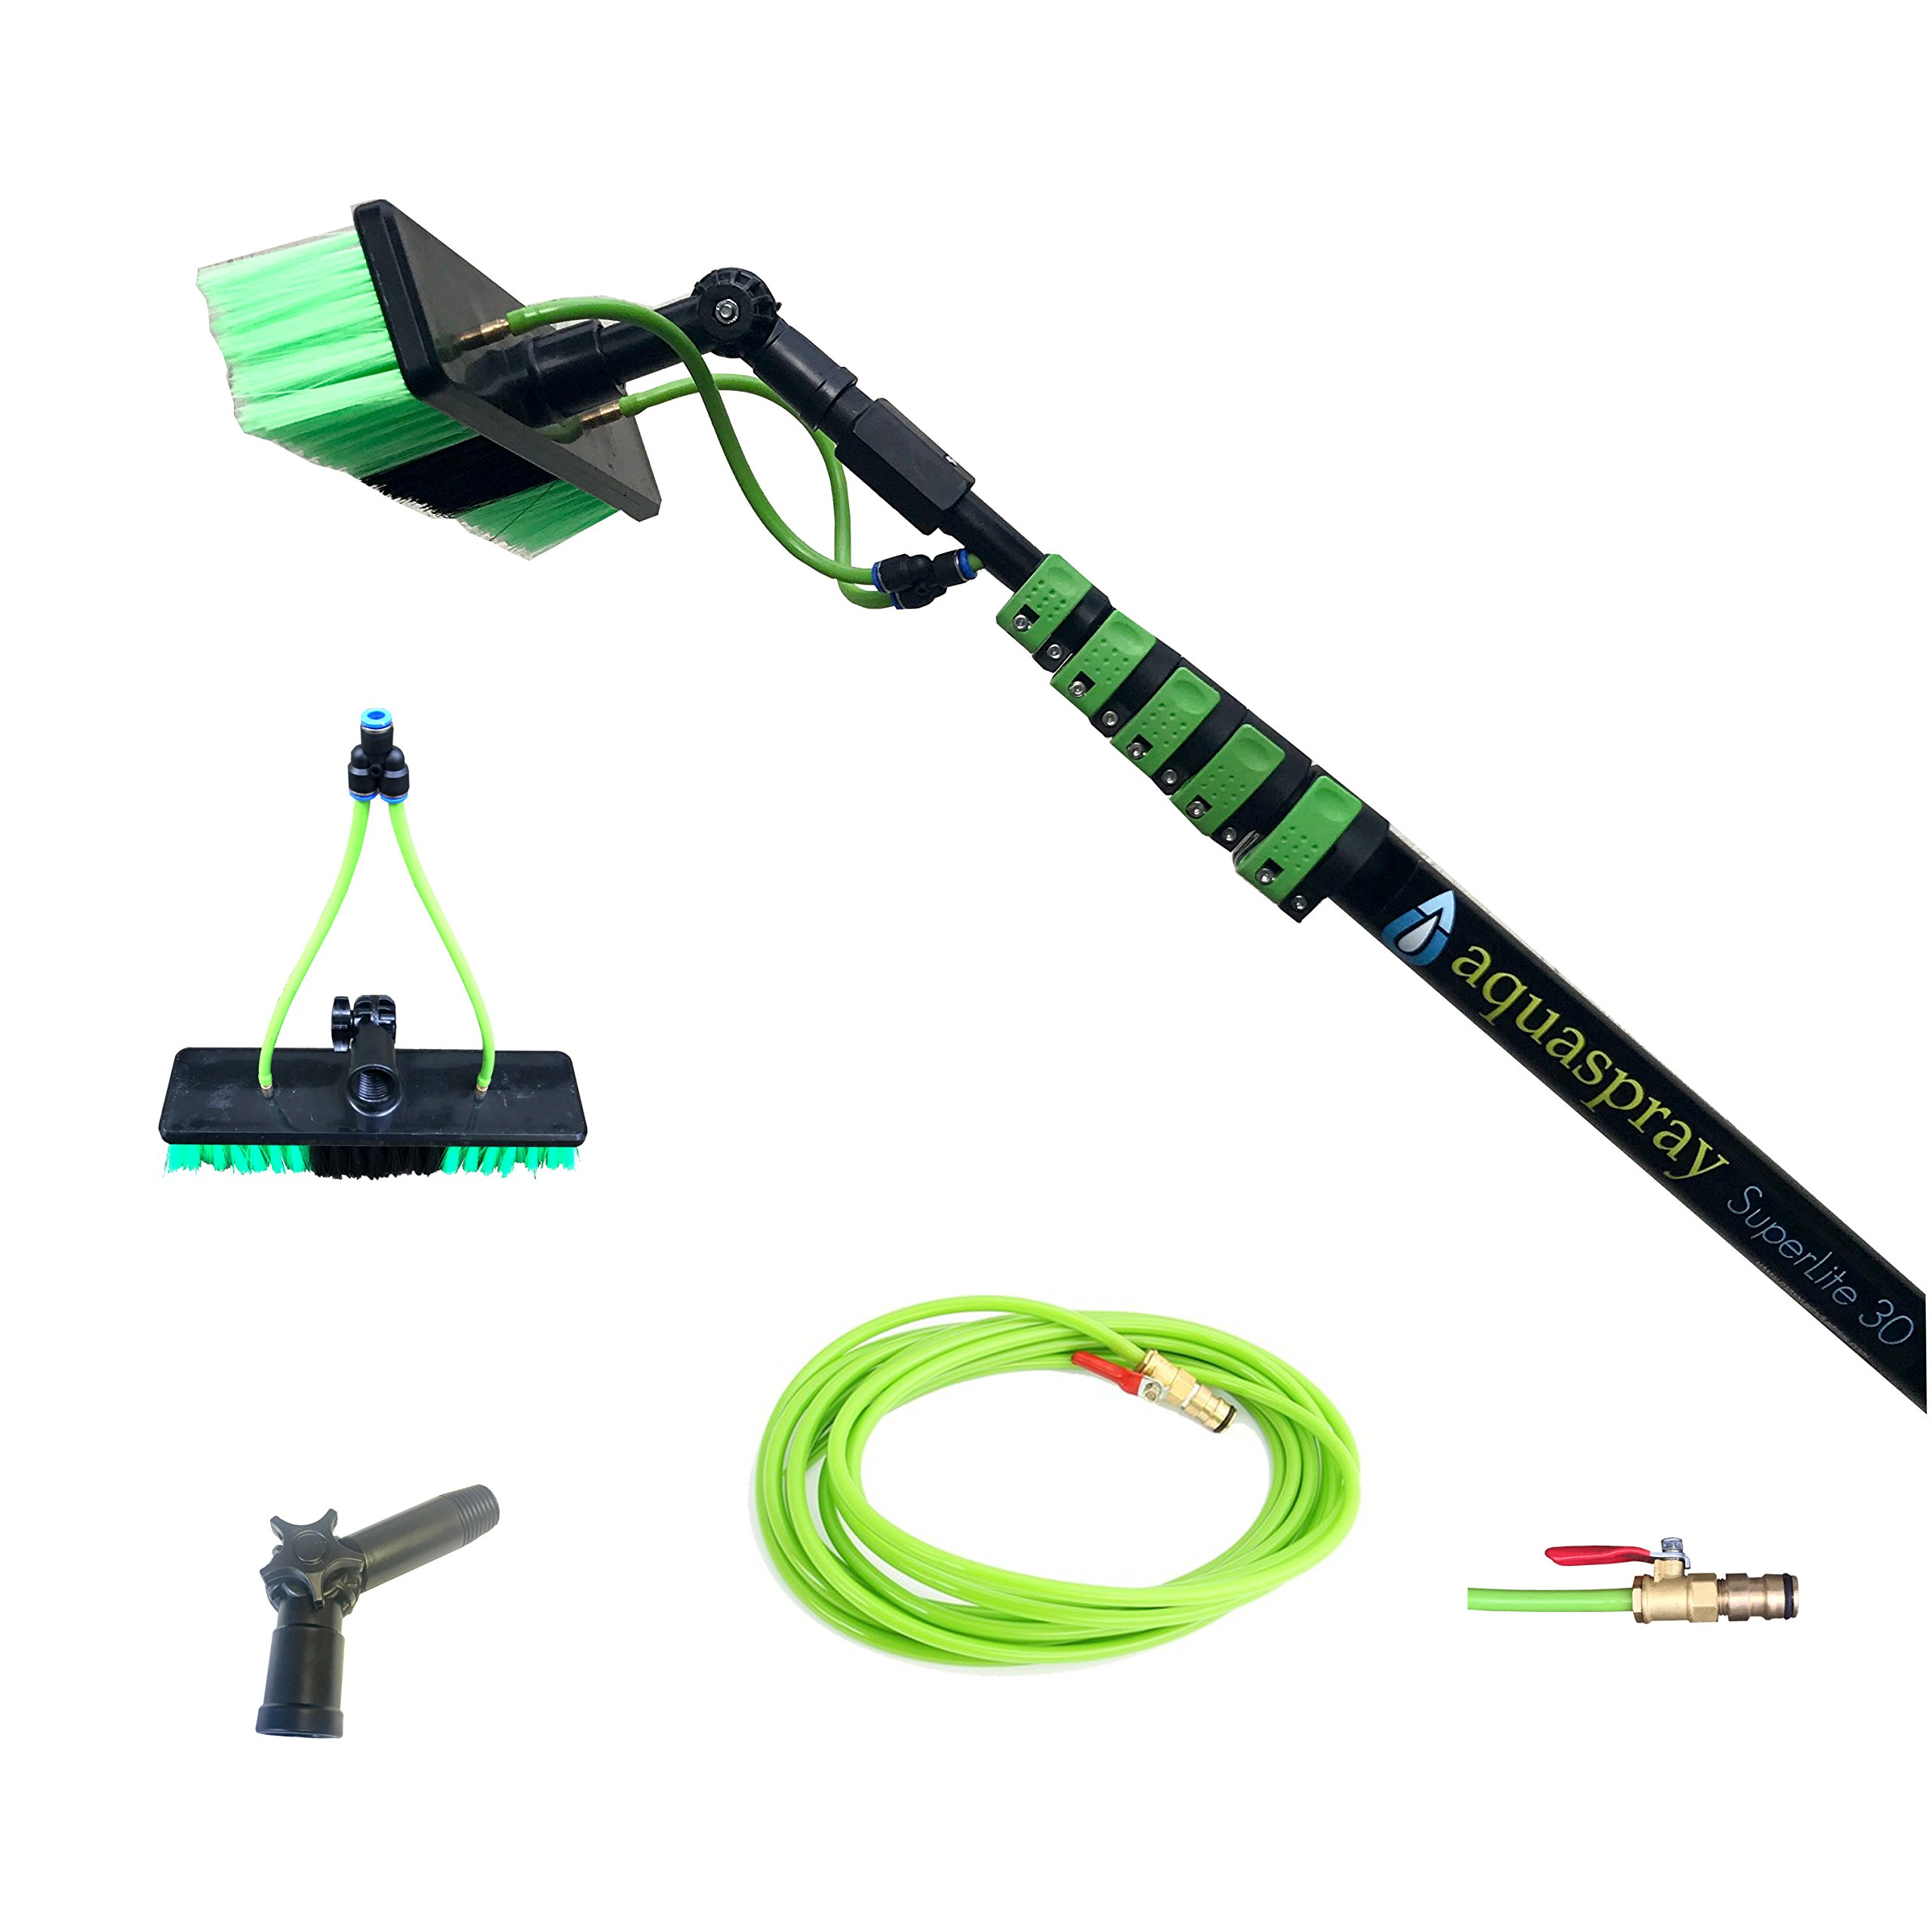 30 ft Water Fed Pole, Window & Solar Panel Cleaning Tool with Brush & Squeegee AquaSpray by EquipMaxx by EquipMaxx AquaSpray (Image #3)